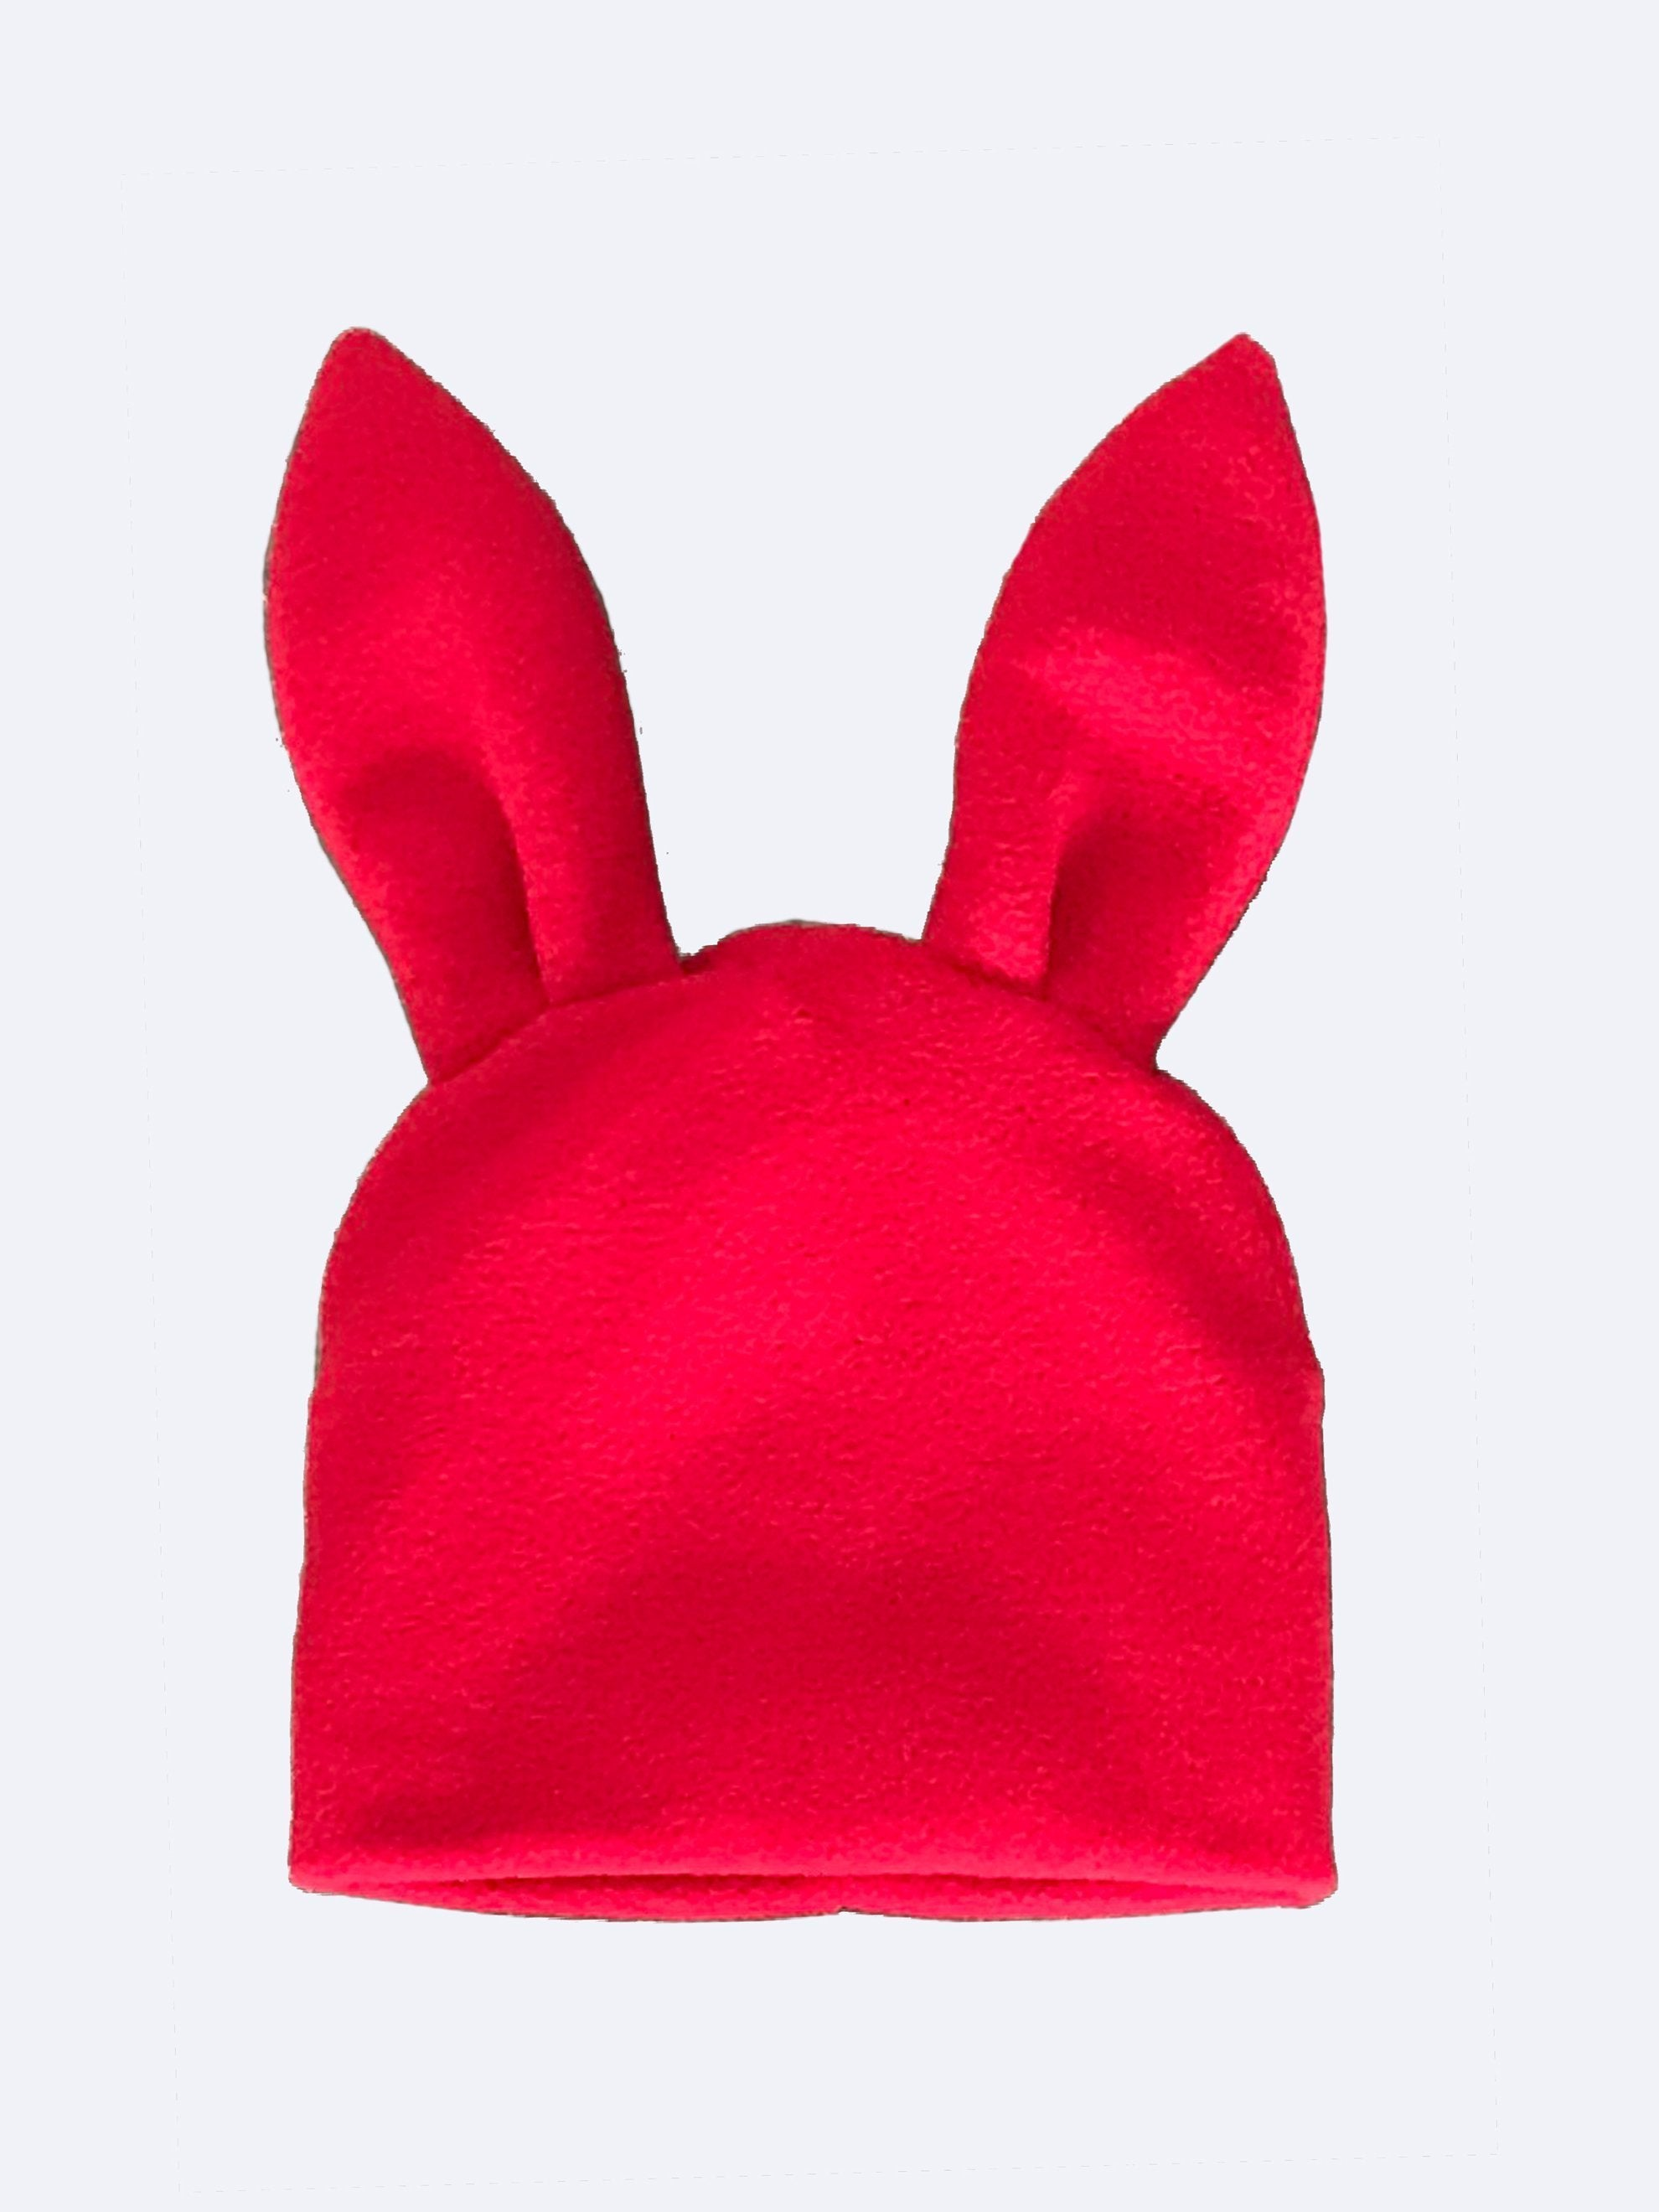 Red Bunny Ears Woven Beanie 3